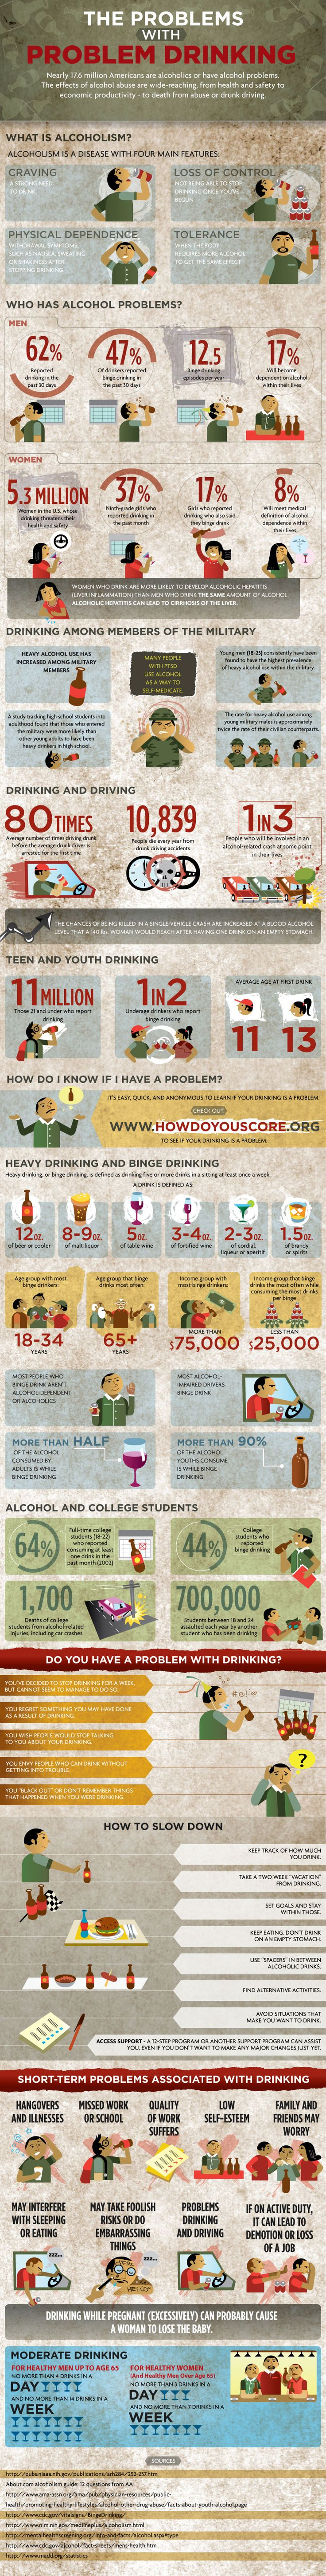 Get useful facts about alcoholism, binge drinking, military alcohol abuse and more from this informative Infographic, courtesy of the nonprofit, Scree